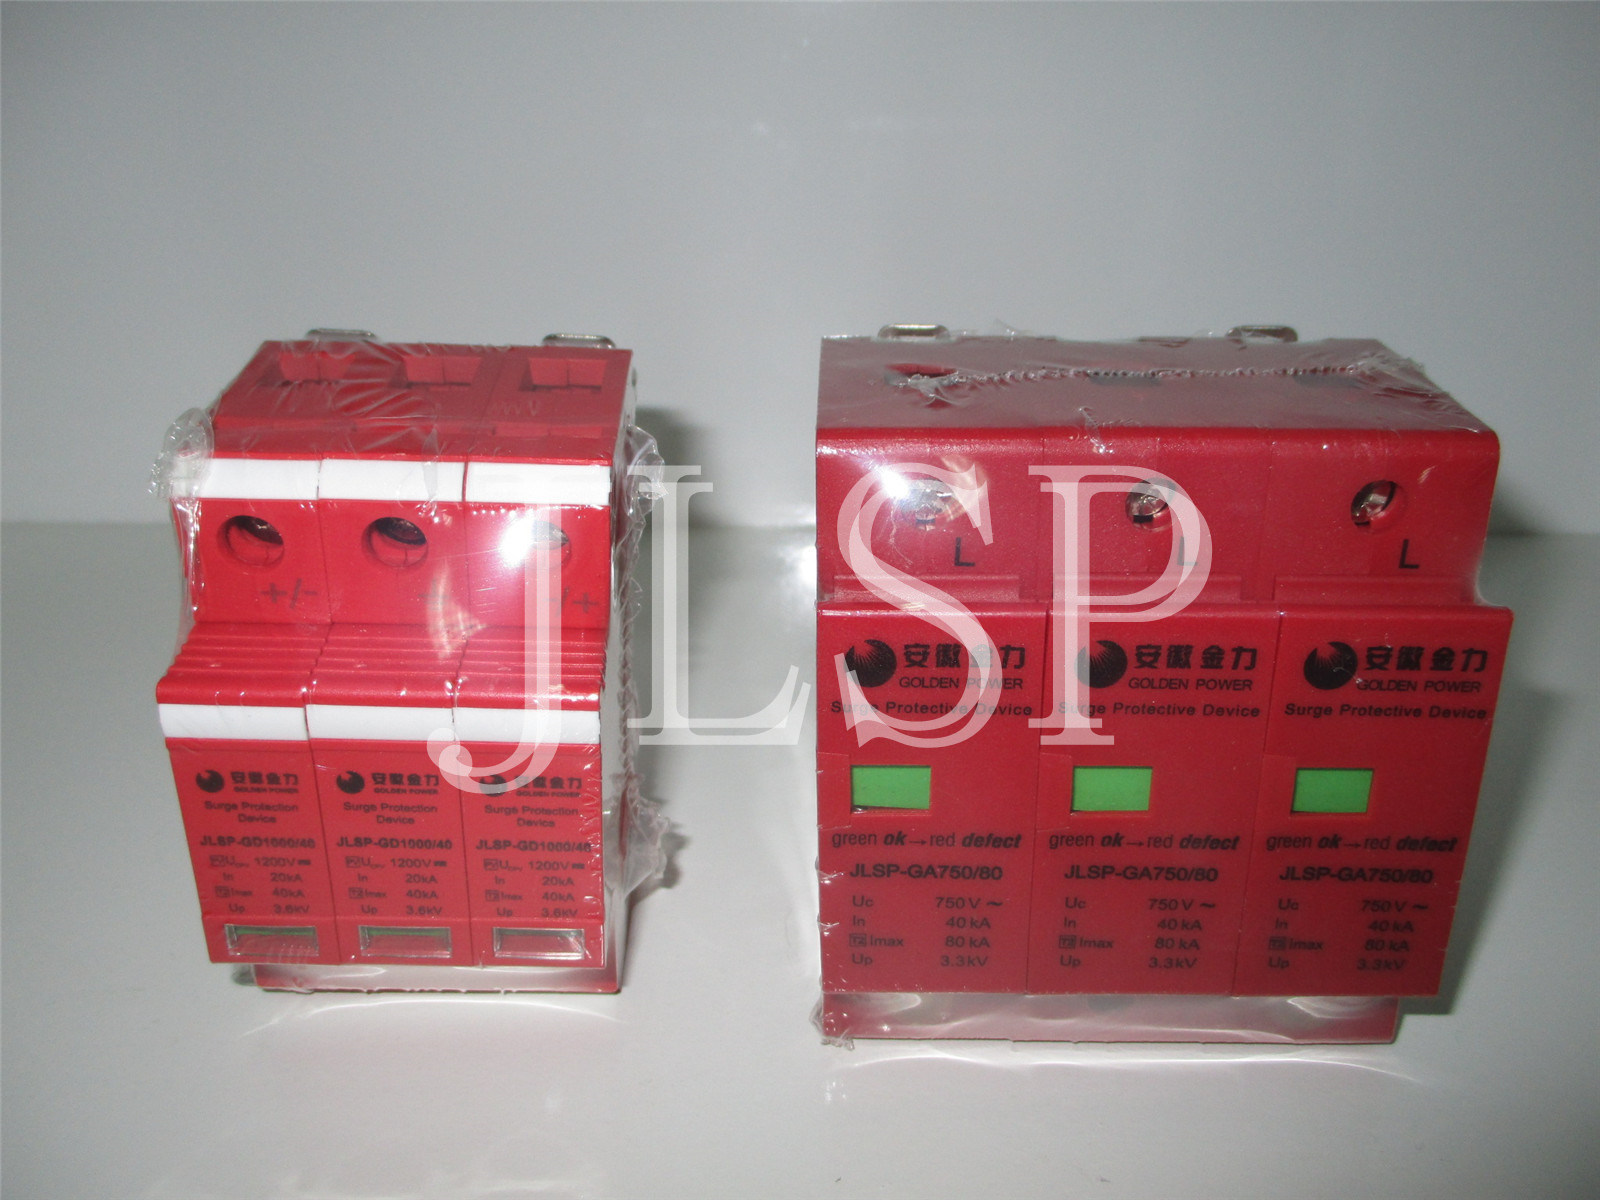 PV Application 20-40ka Solar 3p DC 1000V, Jlsp-Gd1000-40, SPD, Surge Protector, 17007